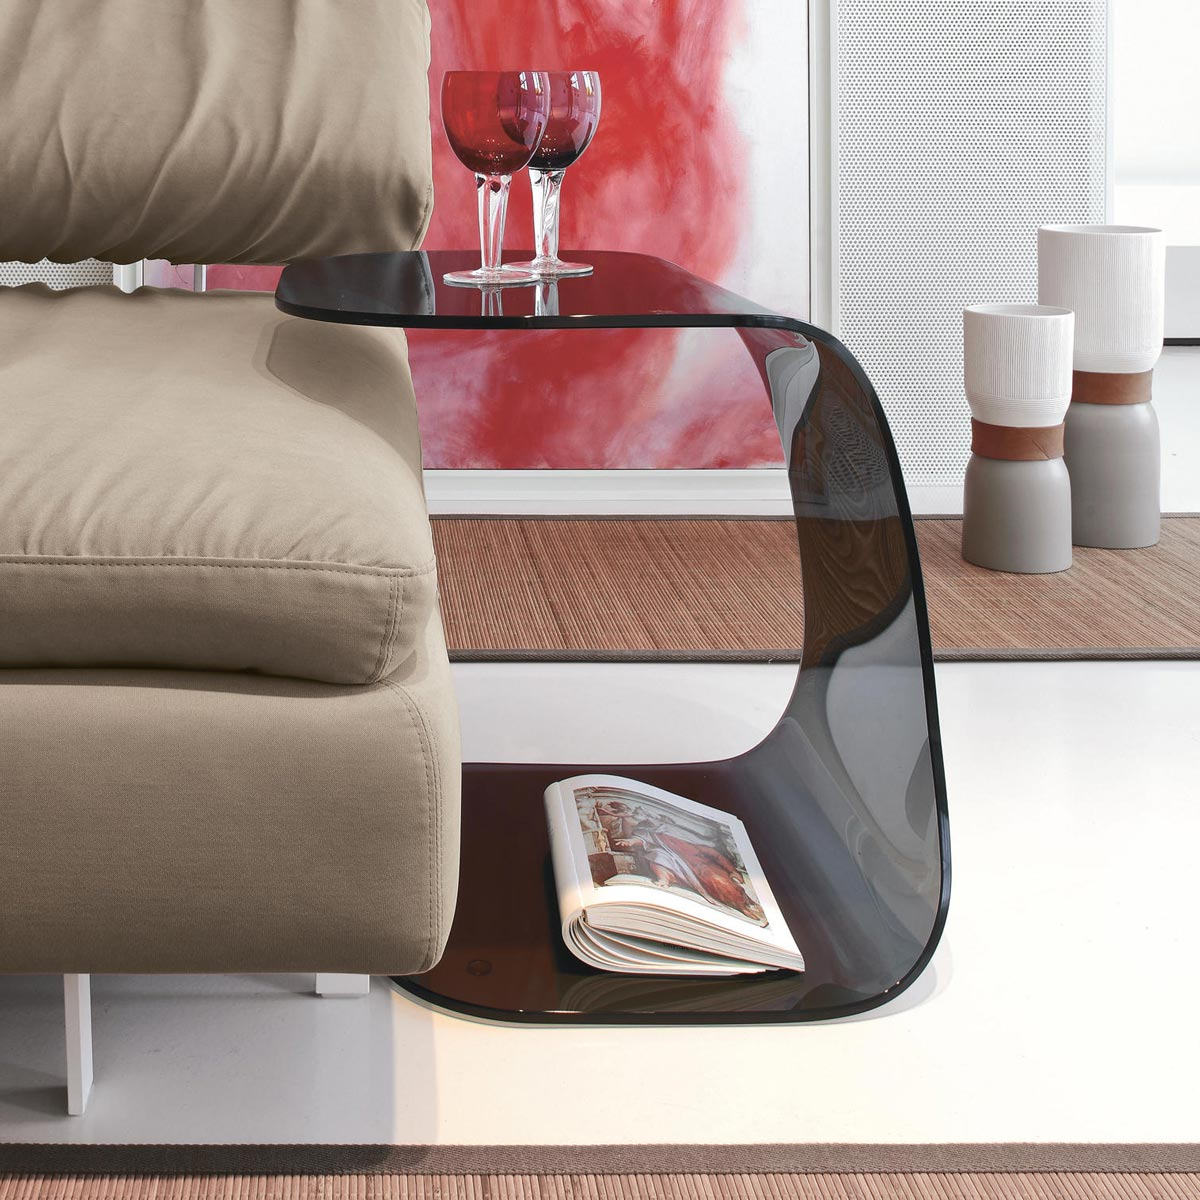 Taky Curved Glass Coffee Table: Beside Curved Glass Table